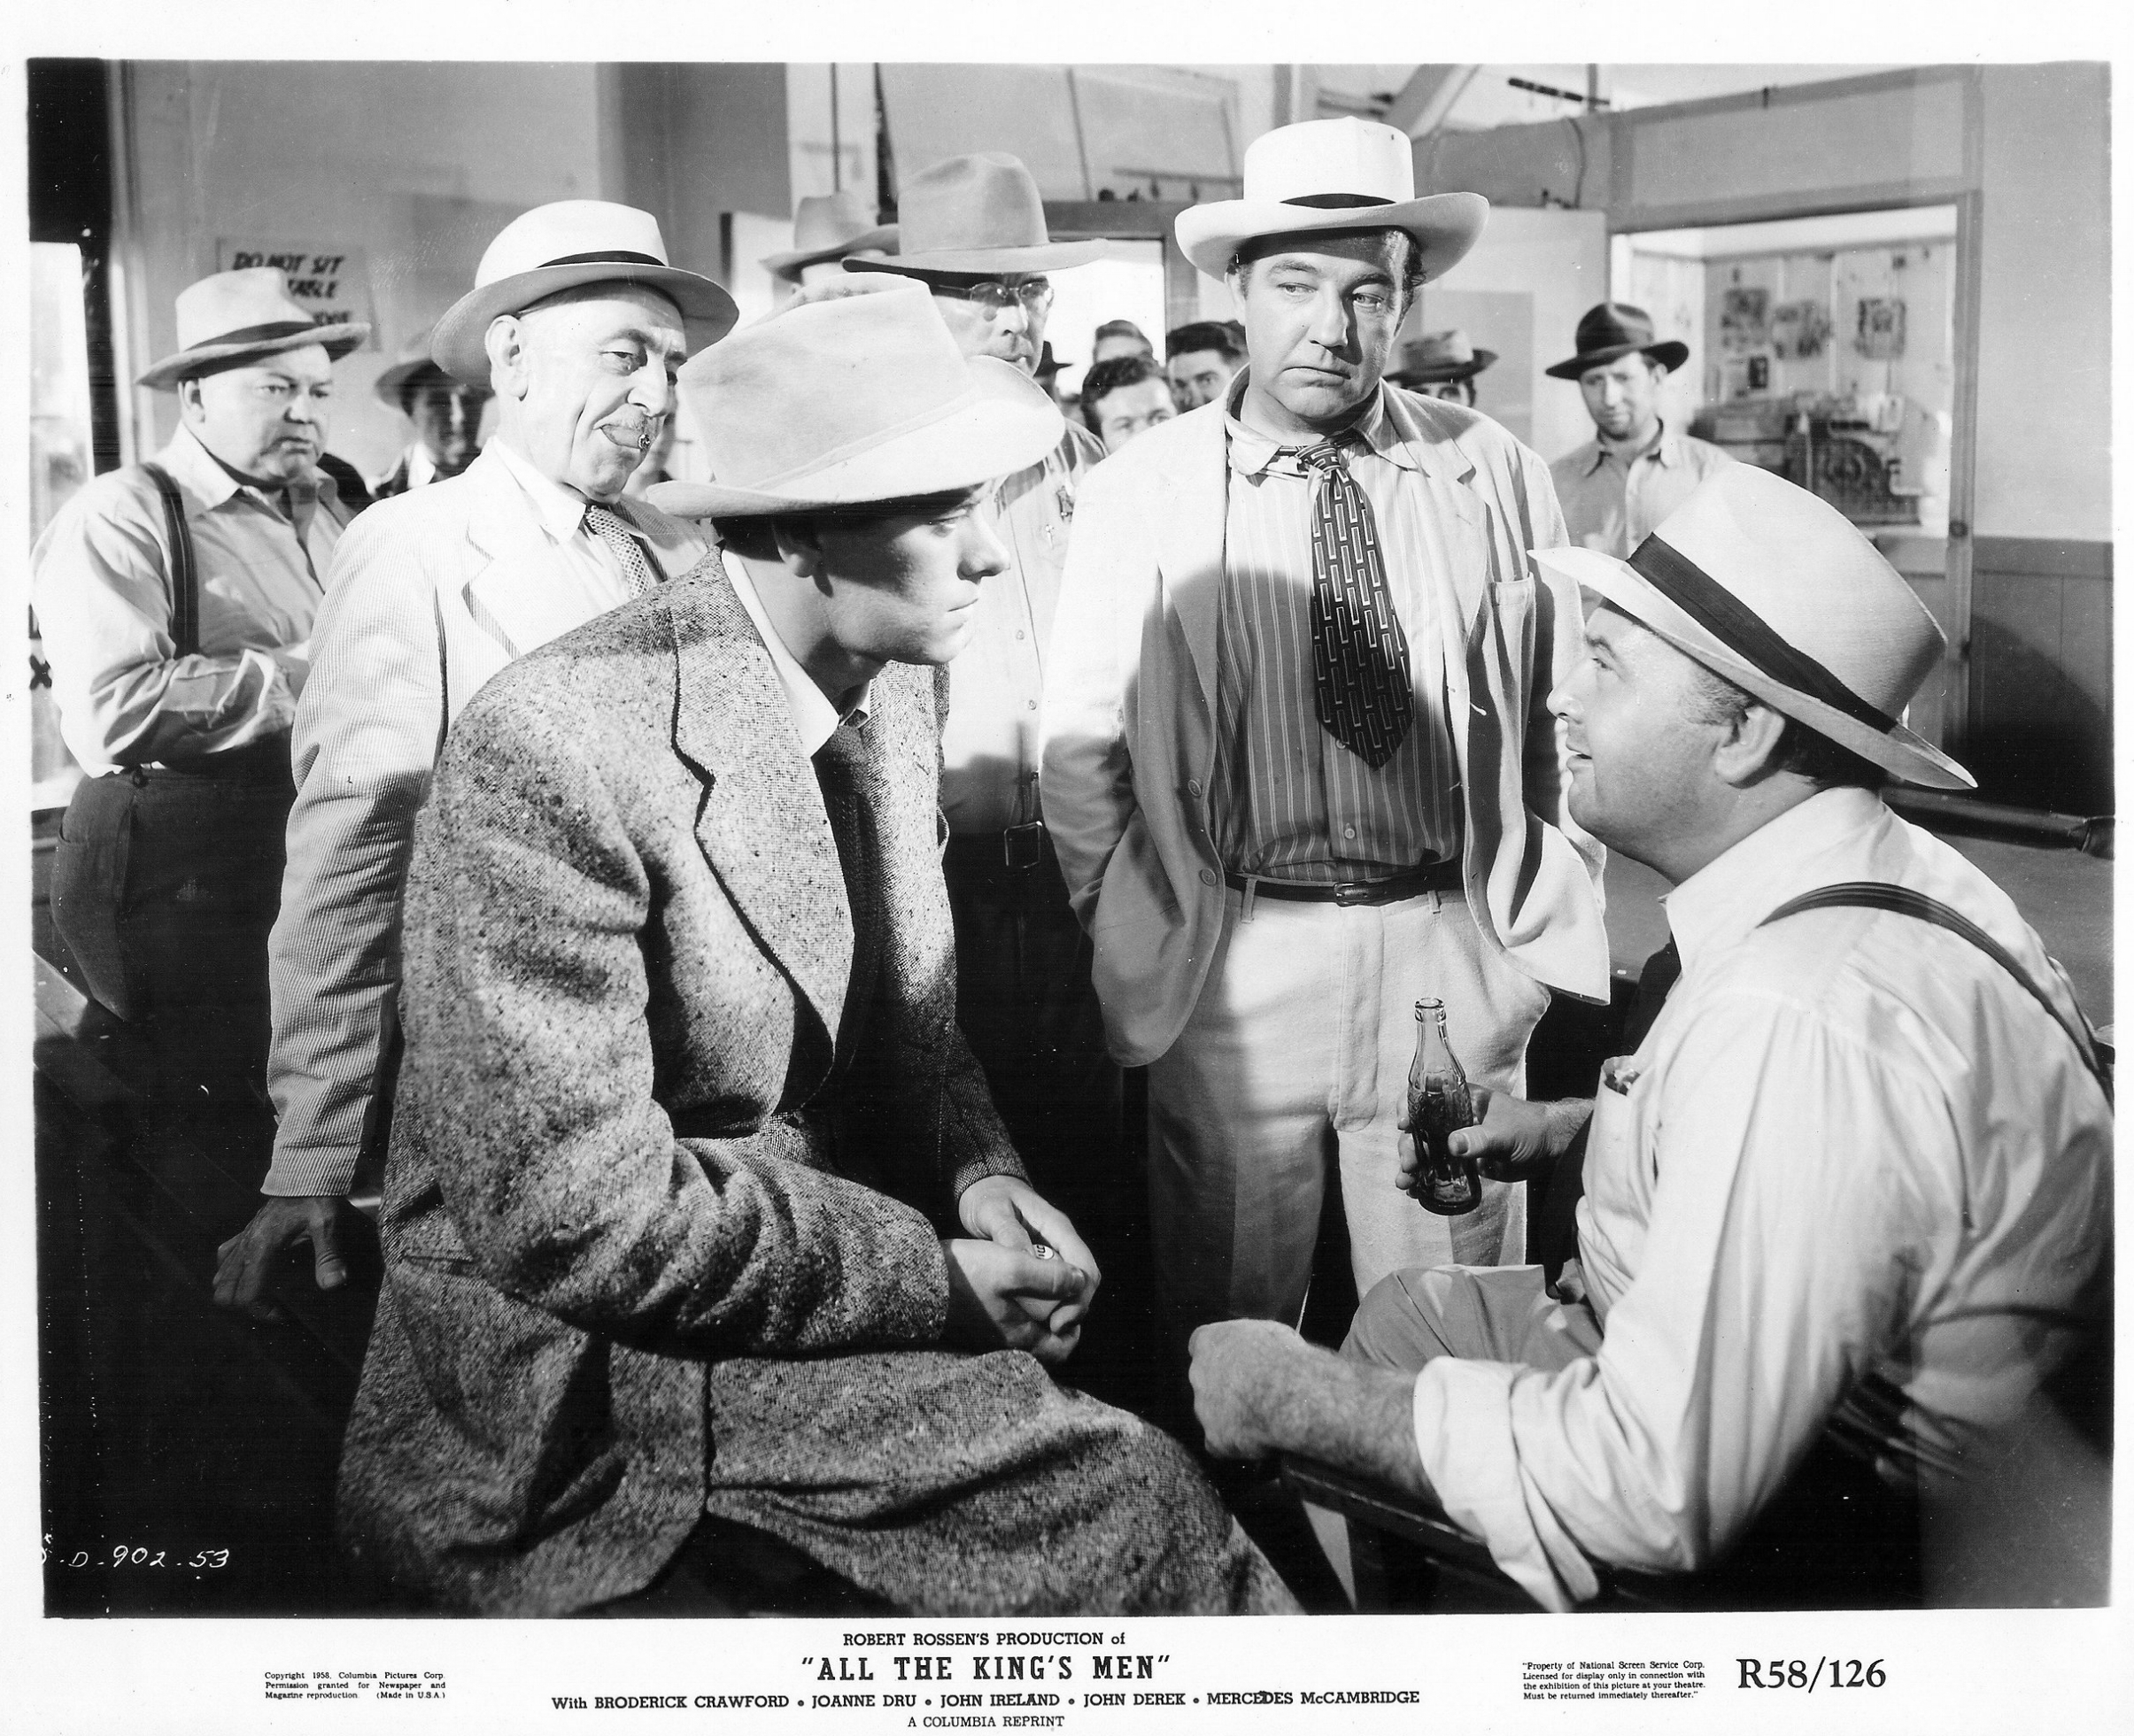 1. Jack Burden (John Ireland, foreground, left), meets Willie Stark (Broderick Crawford, center) and Kanoma City machine members, notably boss Tiny Duffy (Ralph Dumke, right).